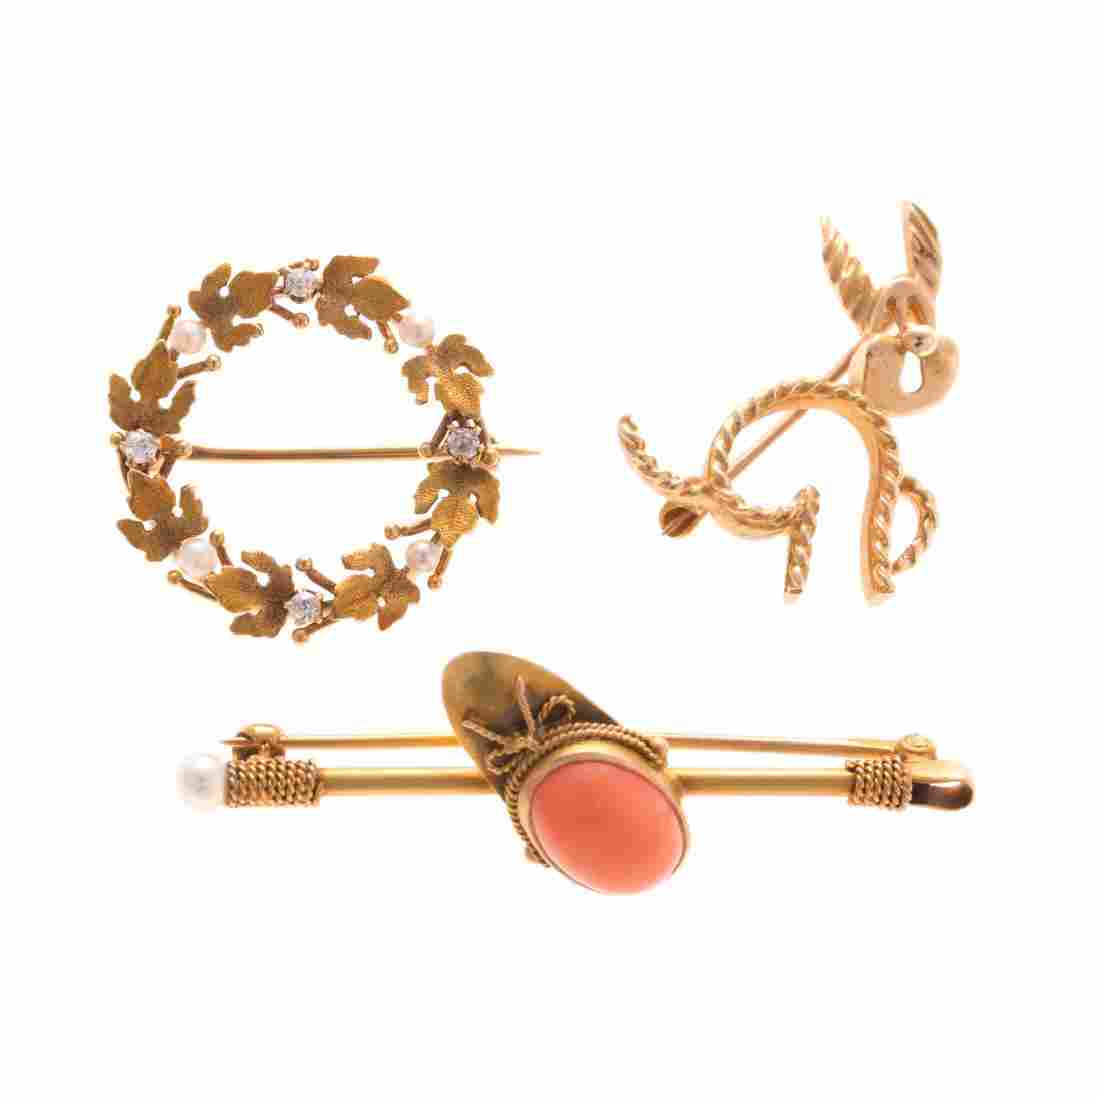 A Trio of Lady's Brooches